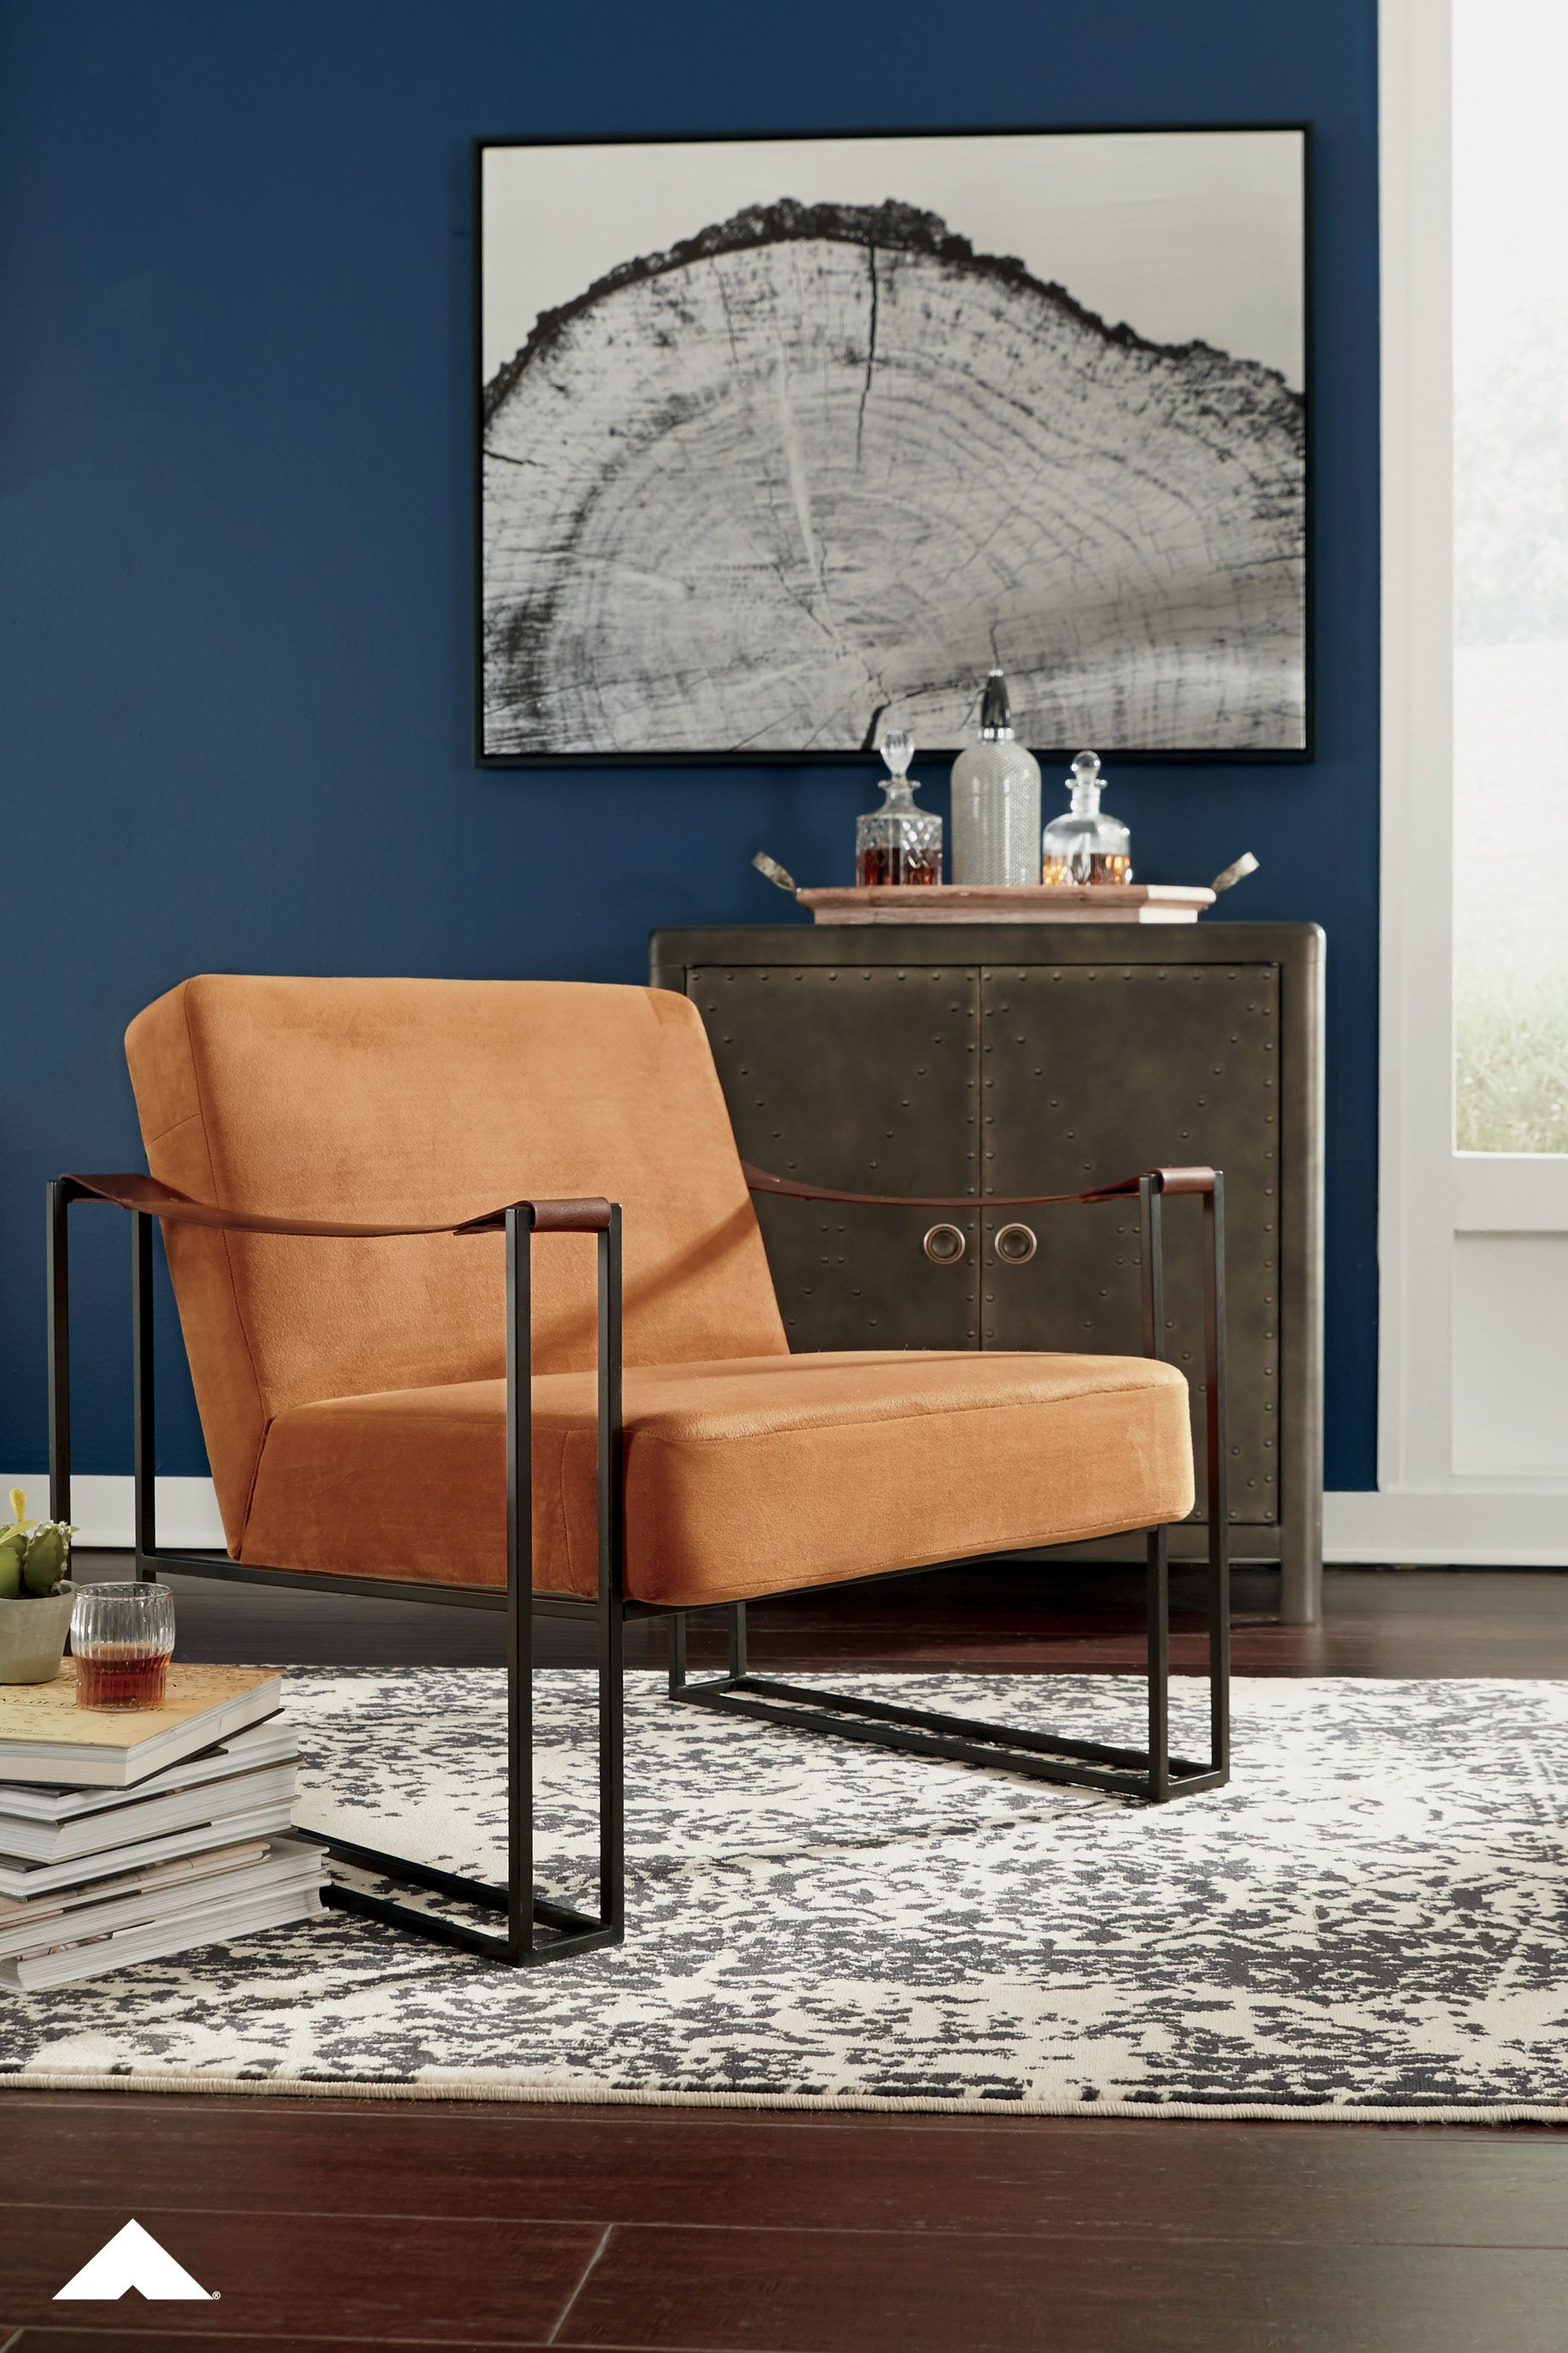 Kleemore Amber Accent Chair Less Is So Much More With This Ultra